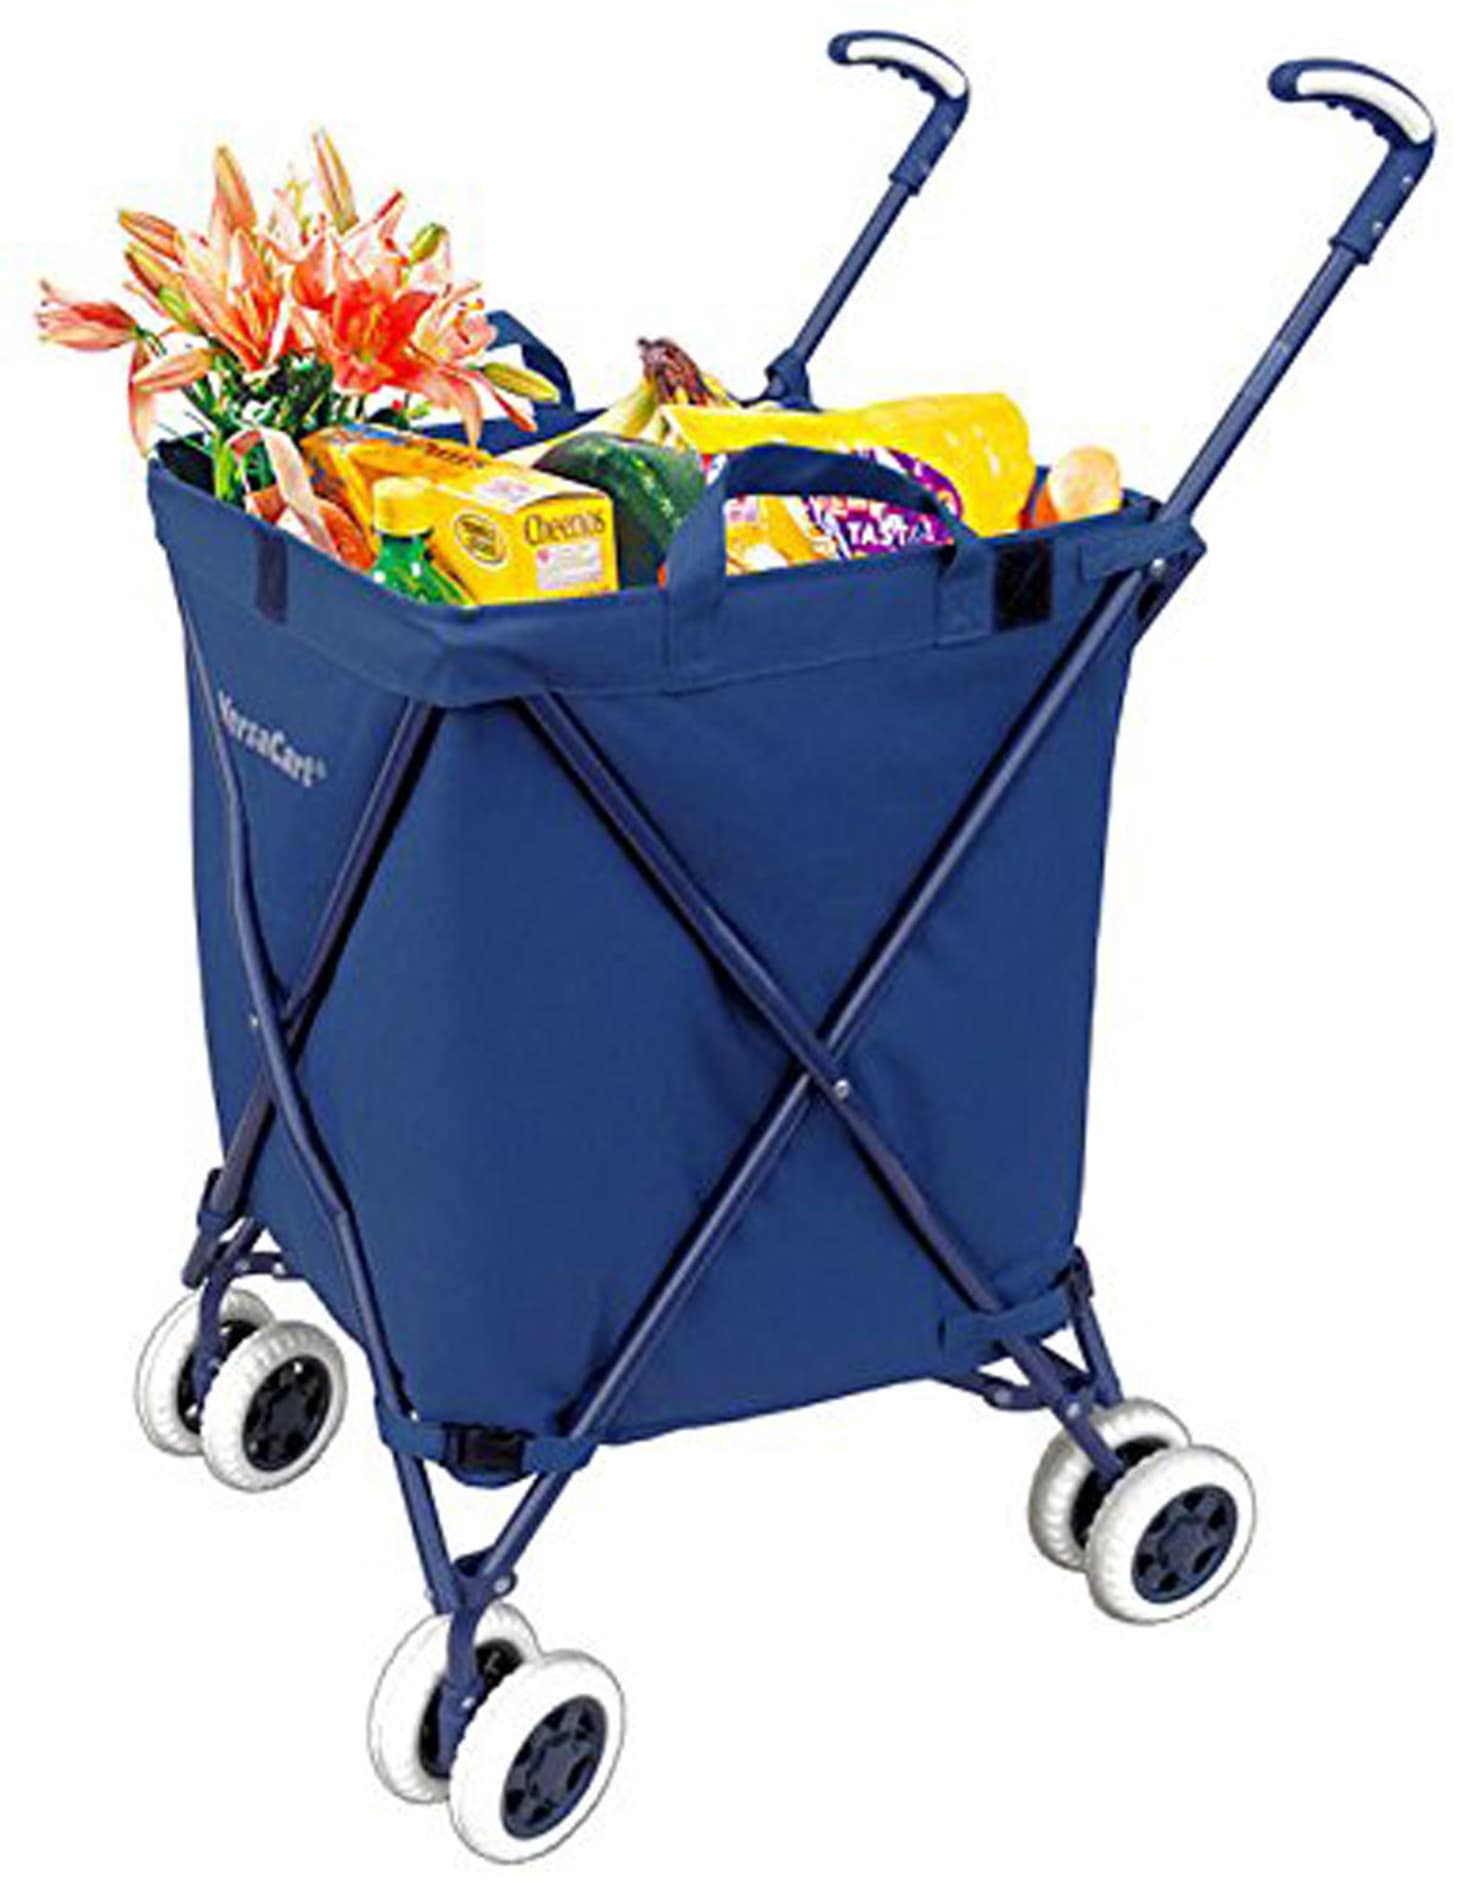 28812145321c Best Shopping Carts for Groceries | Kitchn